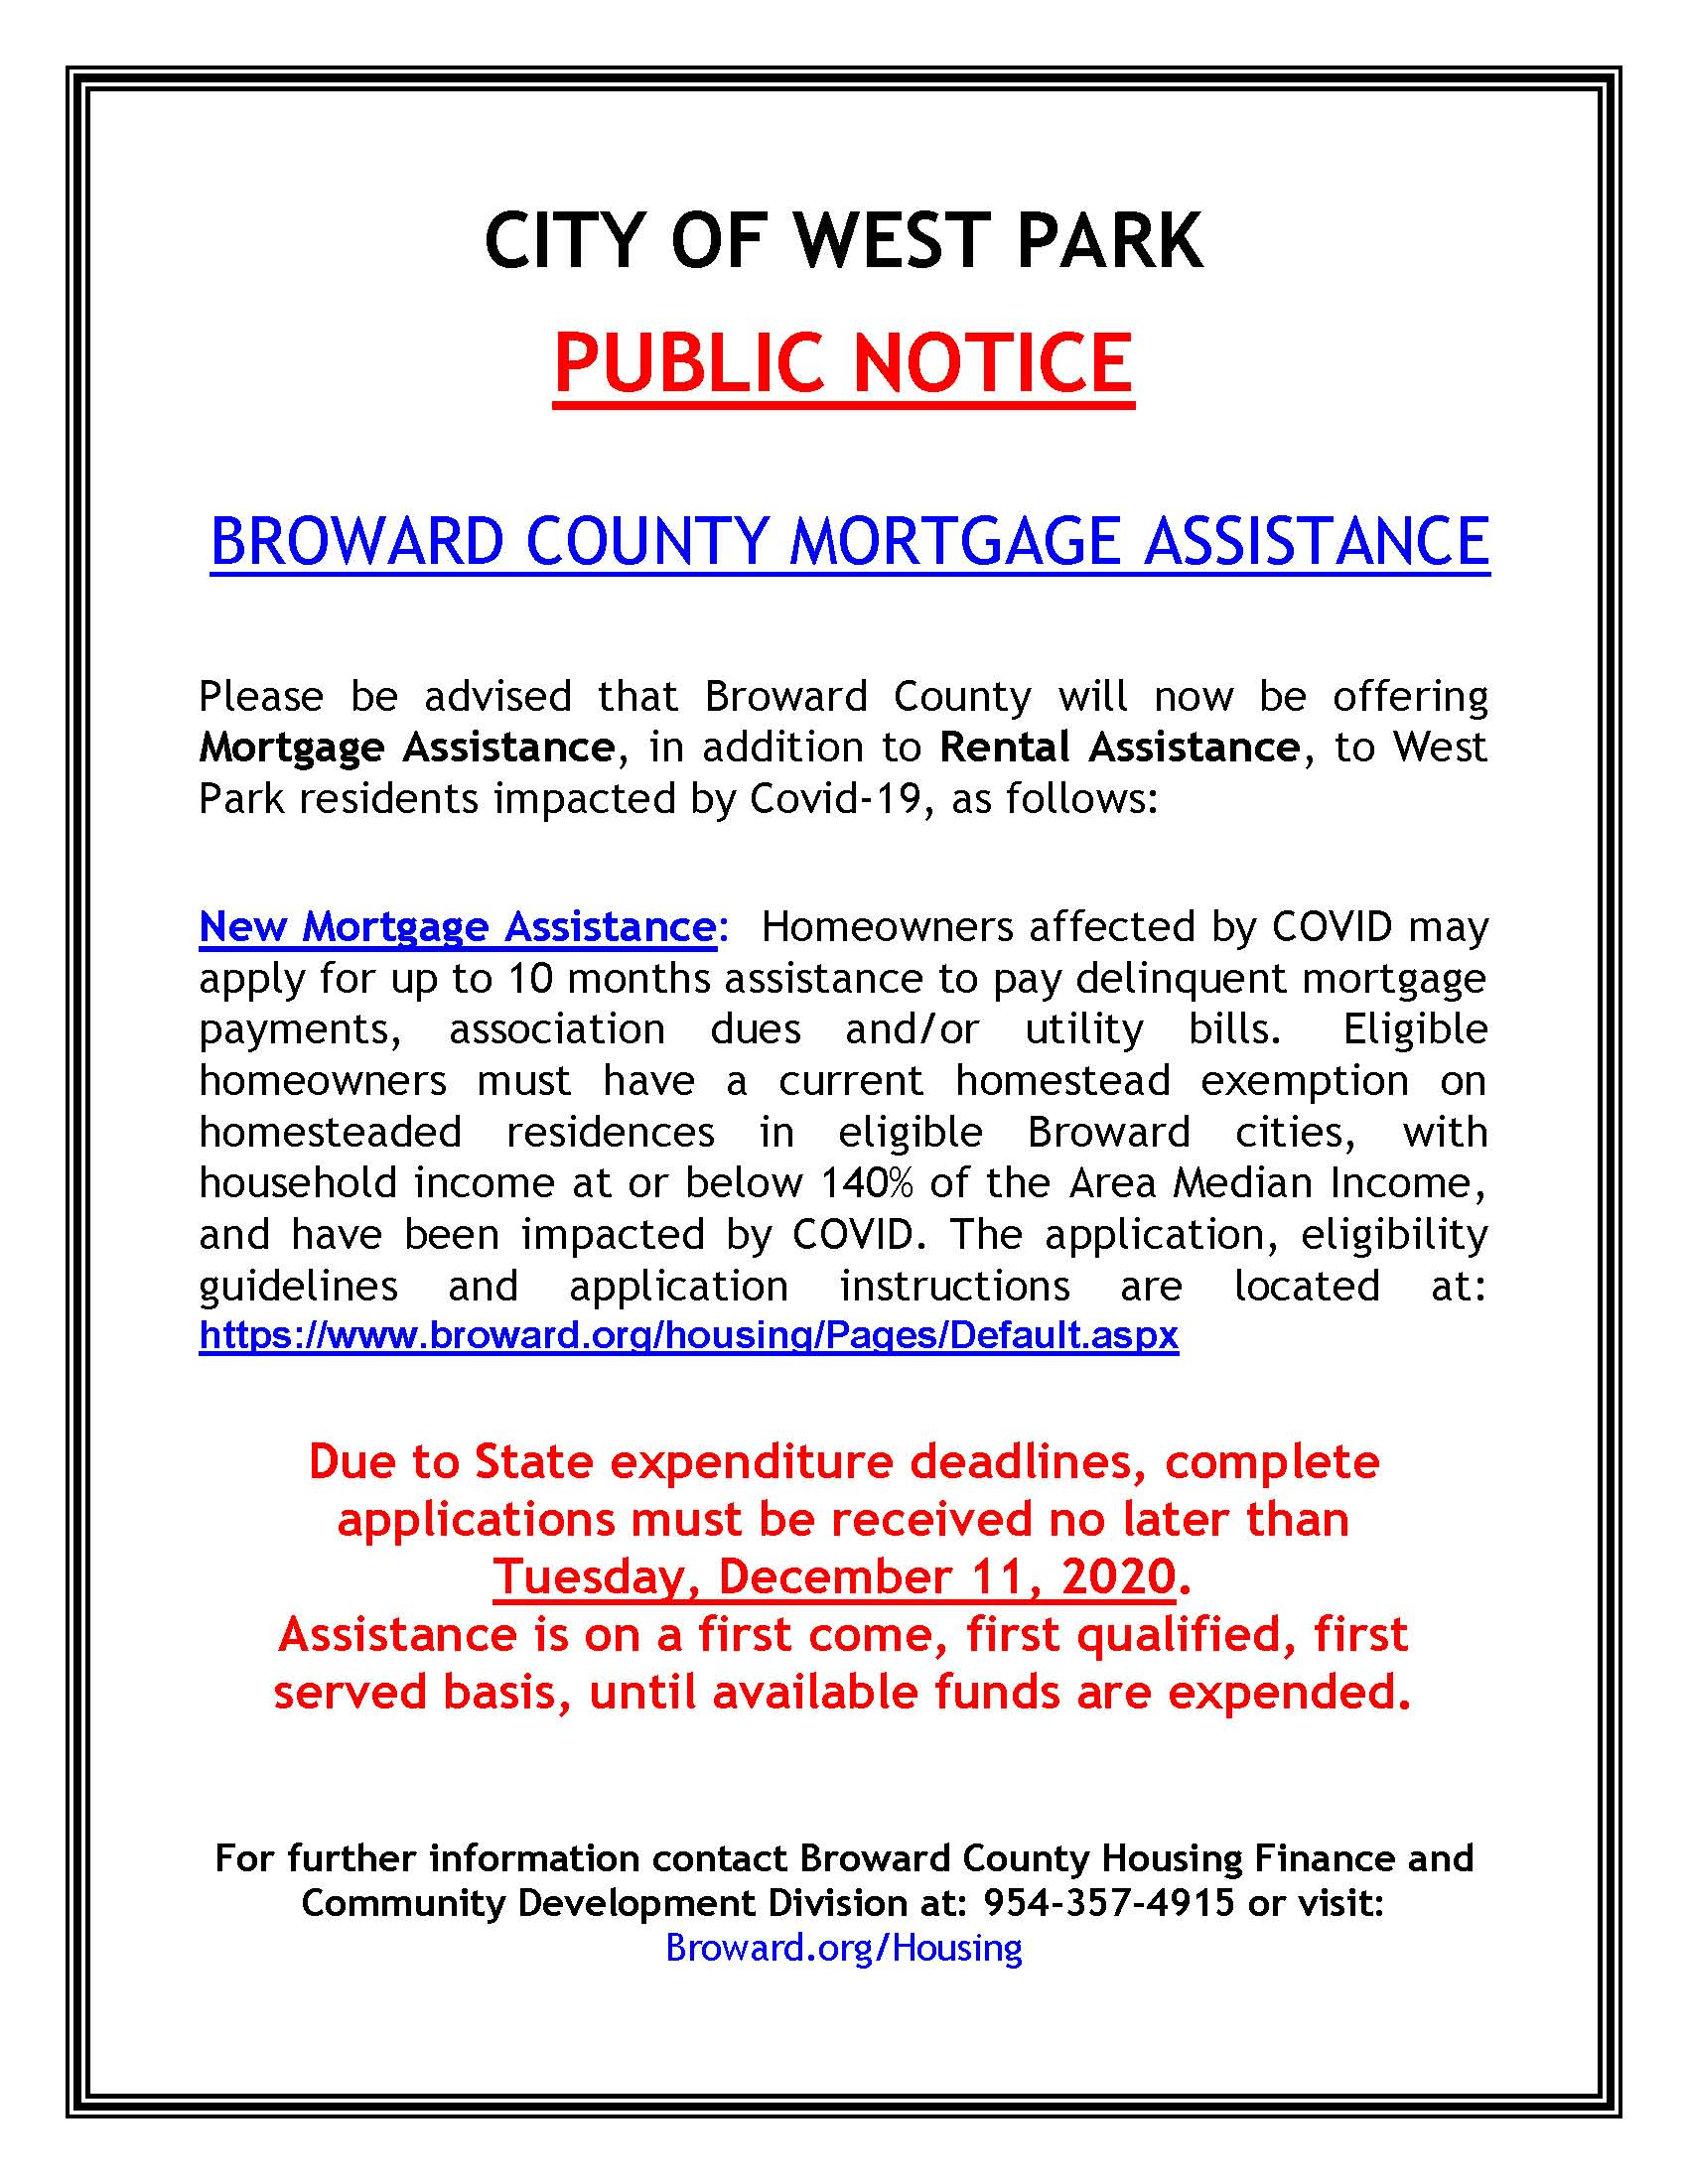 PUBLIC NOTICE - BROWARD COUNTY MORTGAGE RENT ASSISTANCE